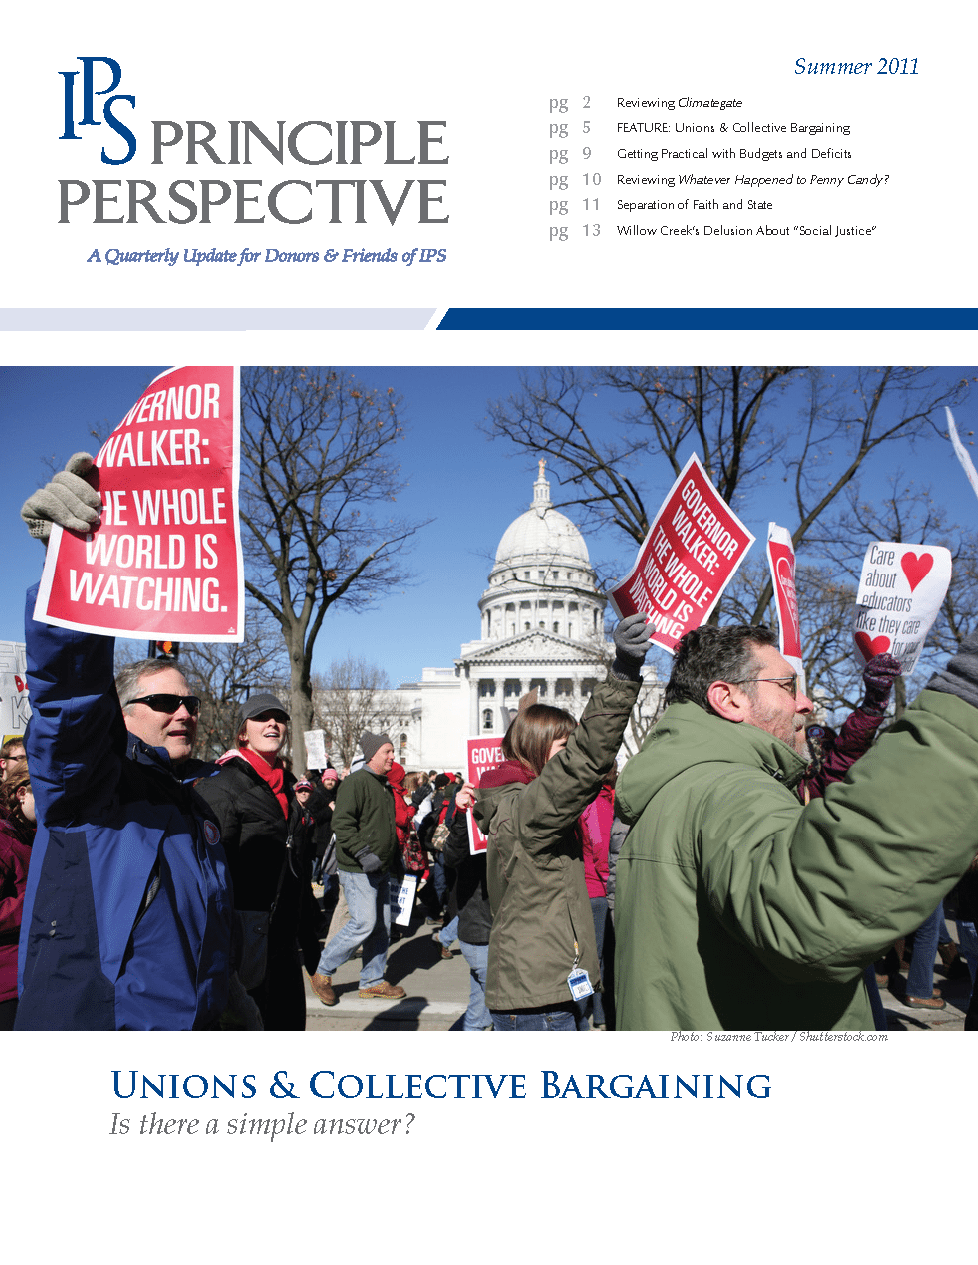 Principle Perspective - Unions & Collective Bargaining